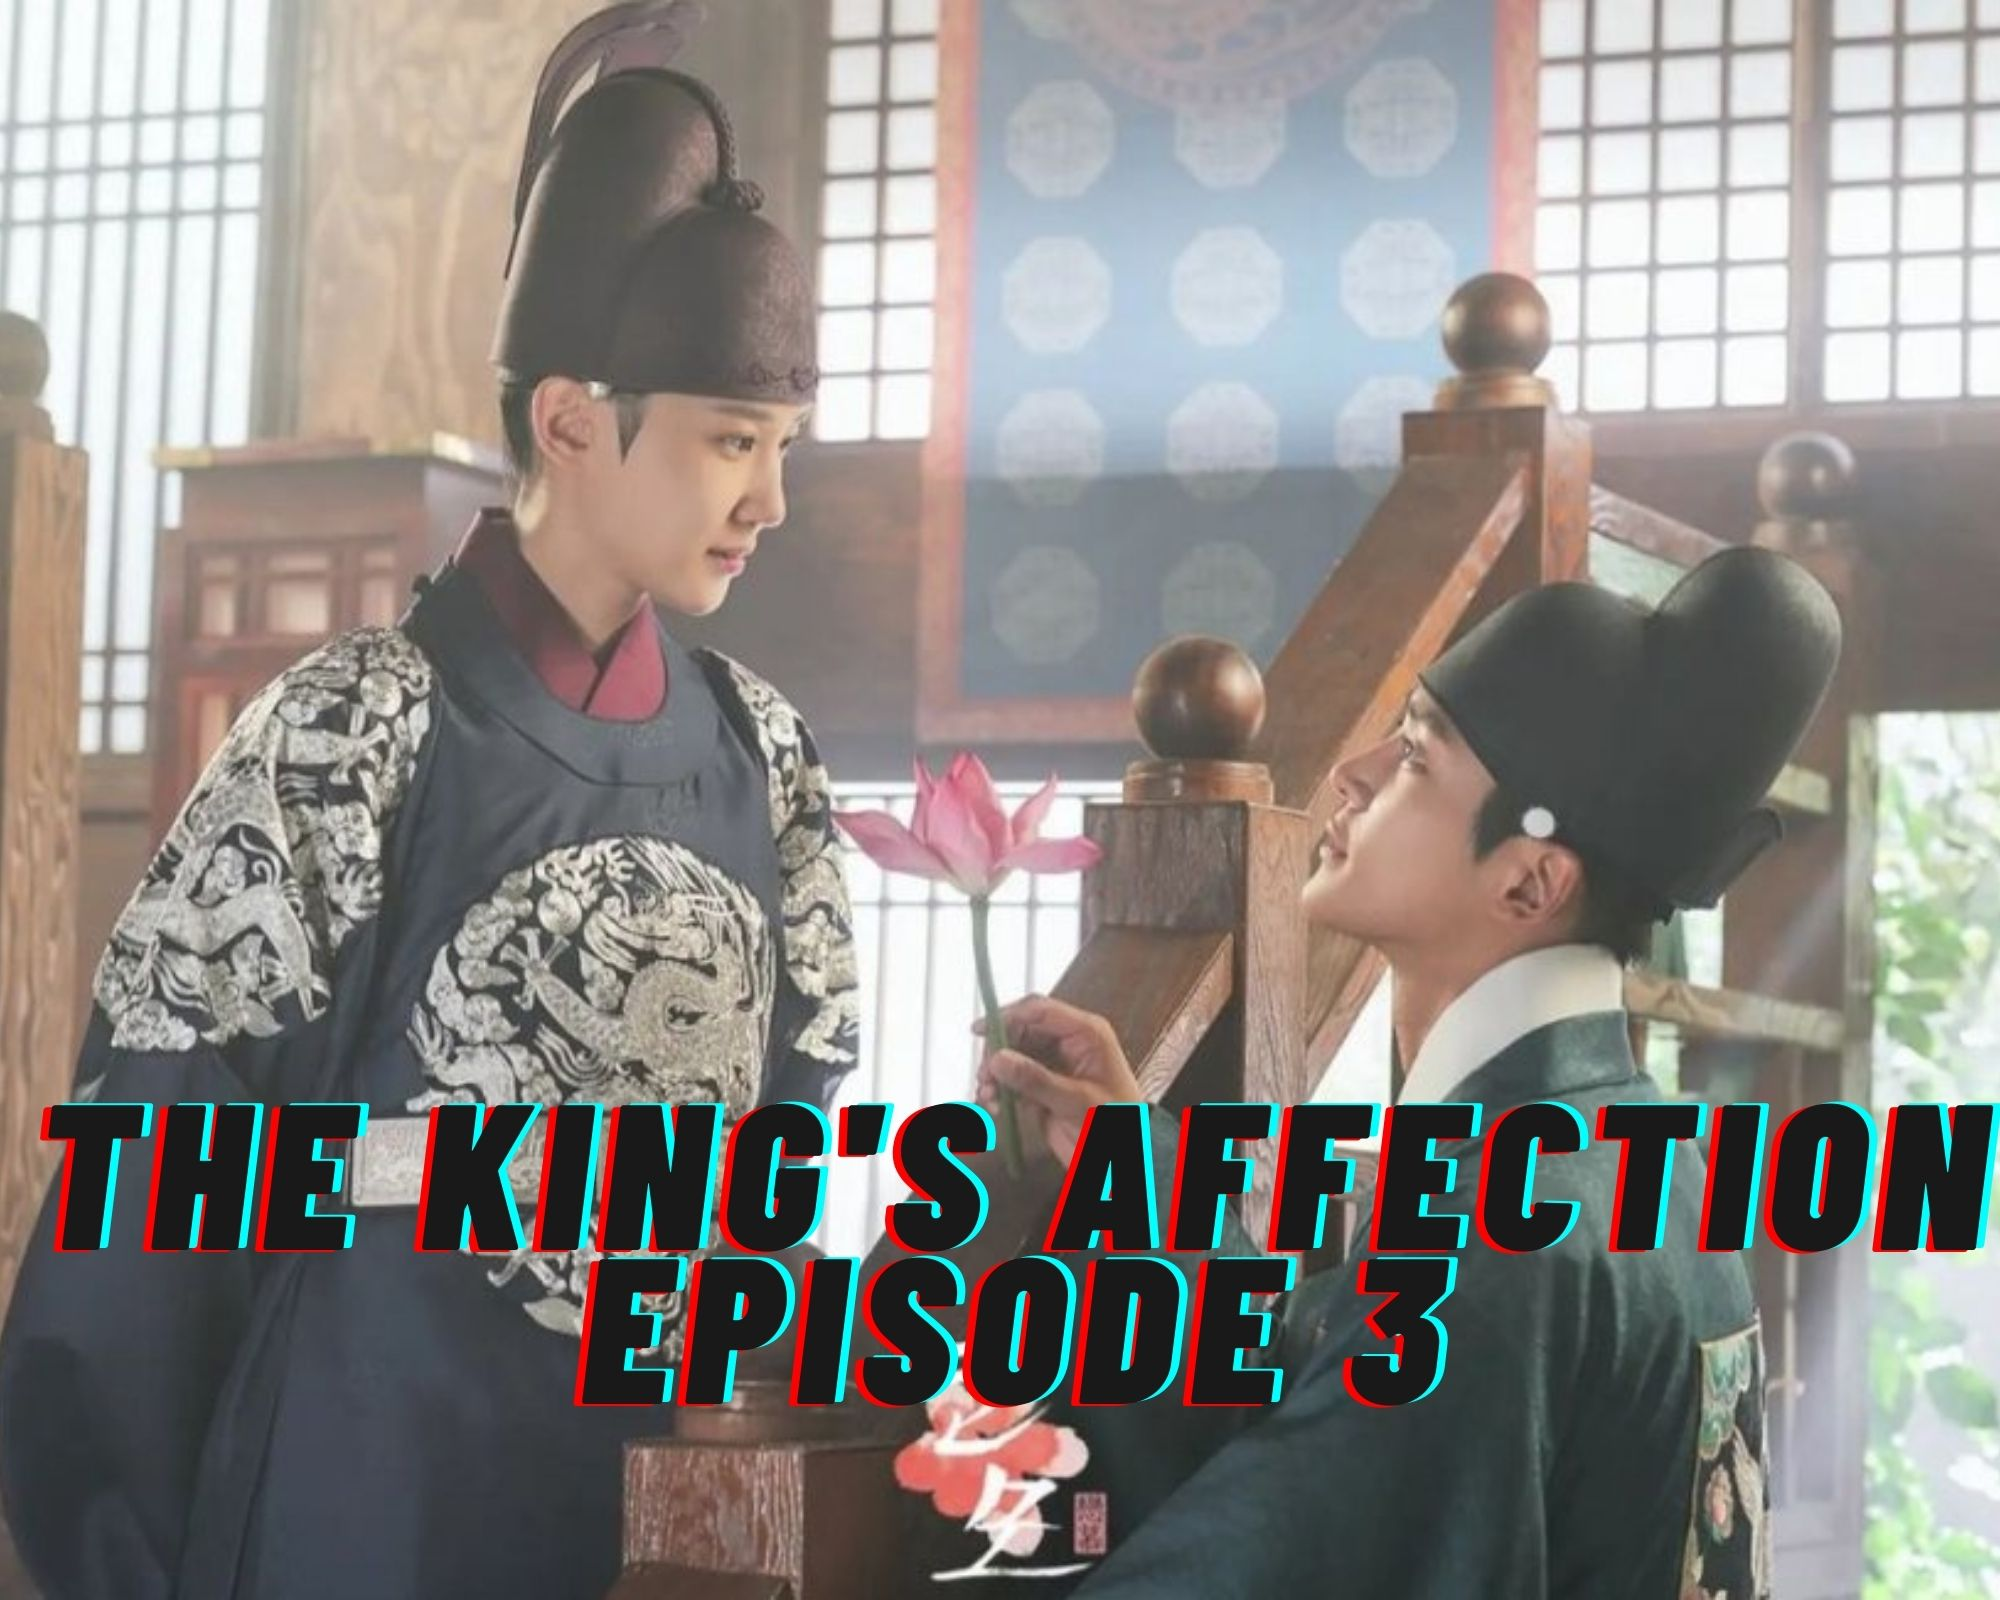 The King's Affection Episode 3